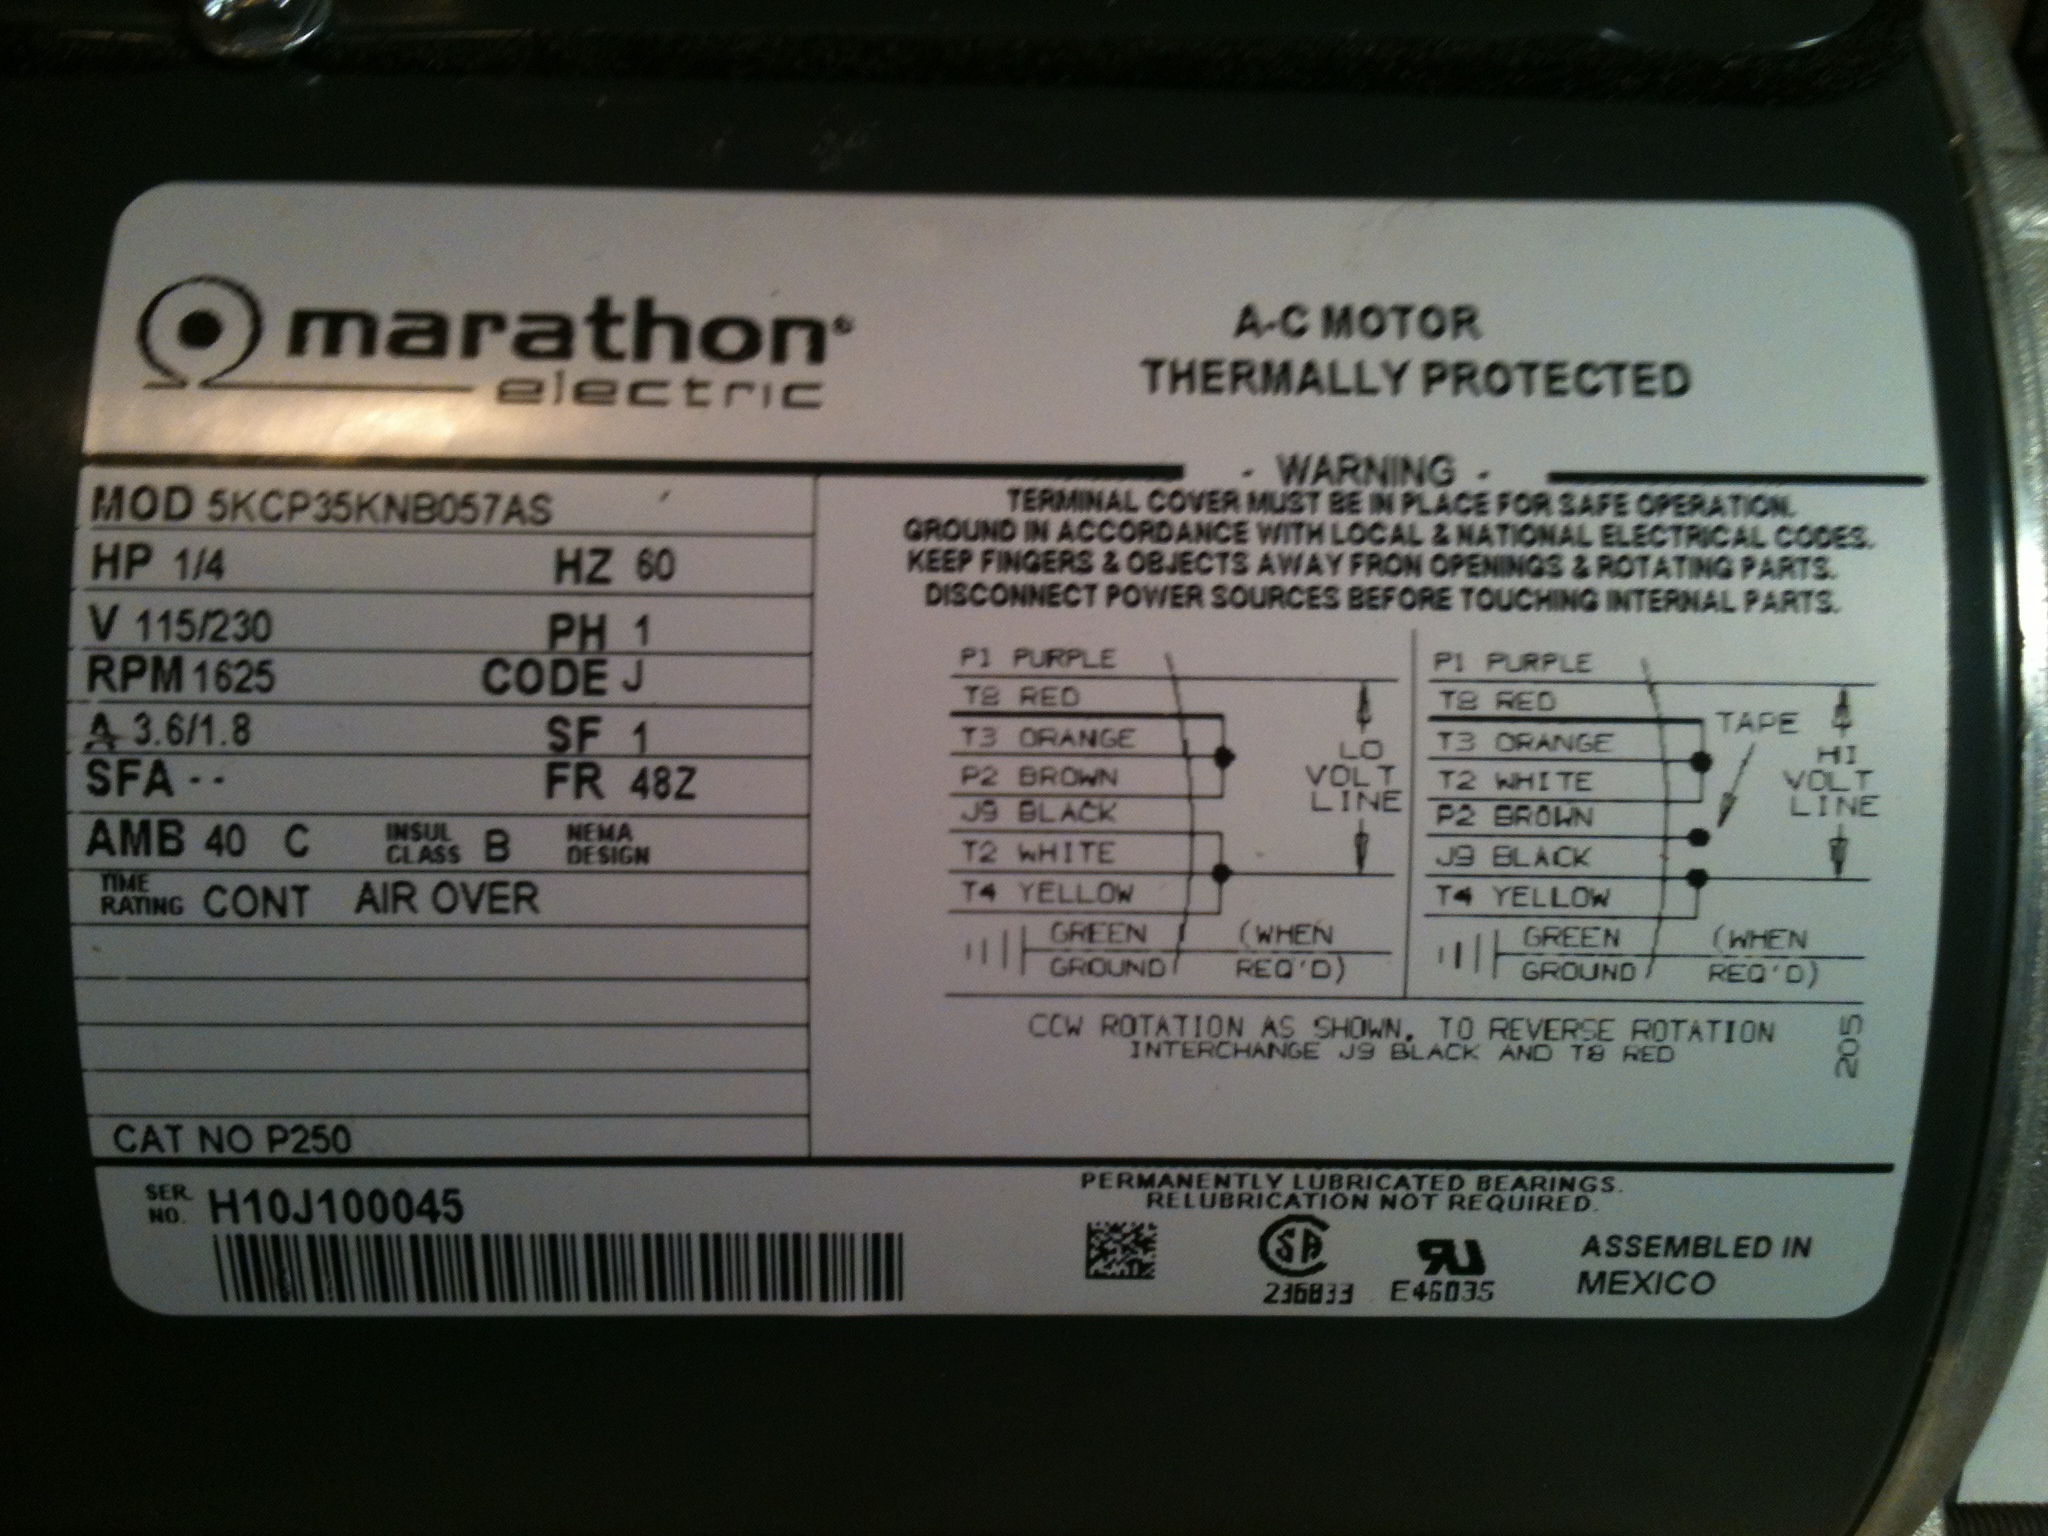 2012 01 24_021217_marathonmotor i just bought a marathon electric ac motor, hp 1 4 v 115 230 Toshiba Electric Motor Wiring Diagrams at eliteediting.co